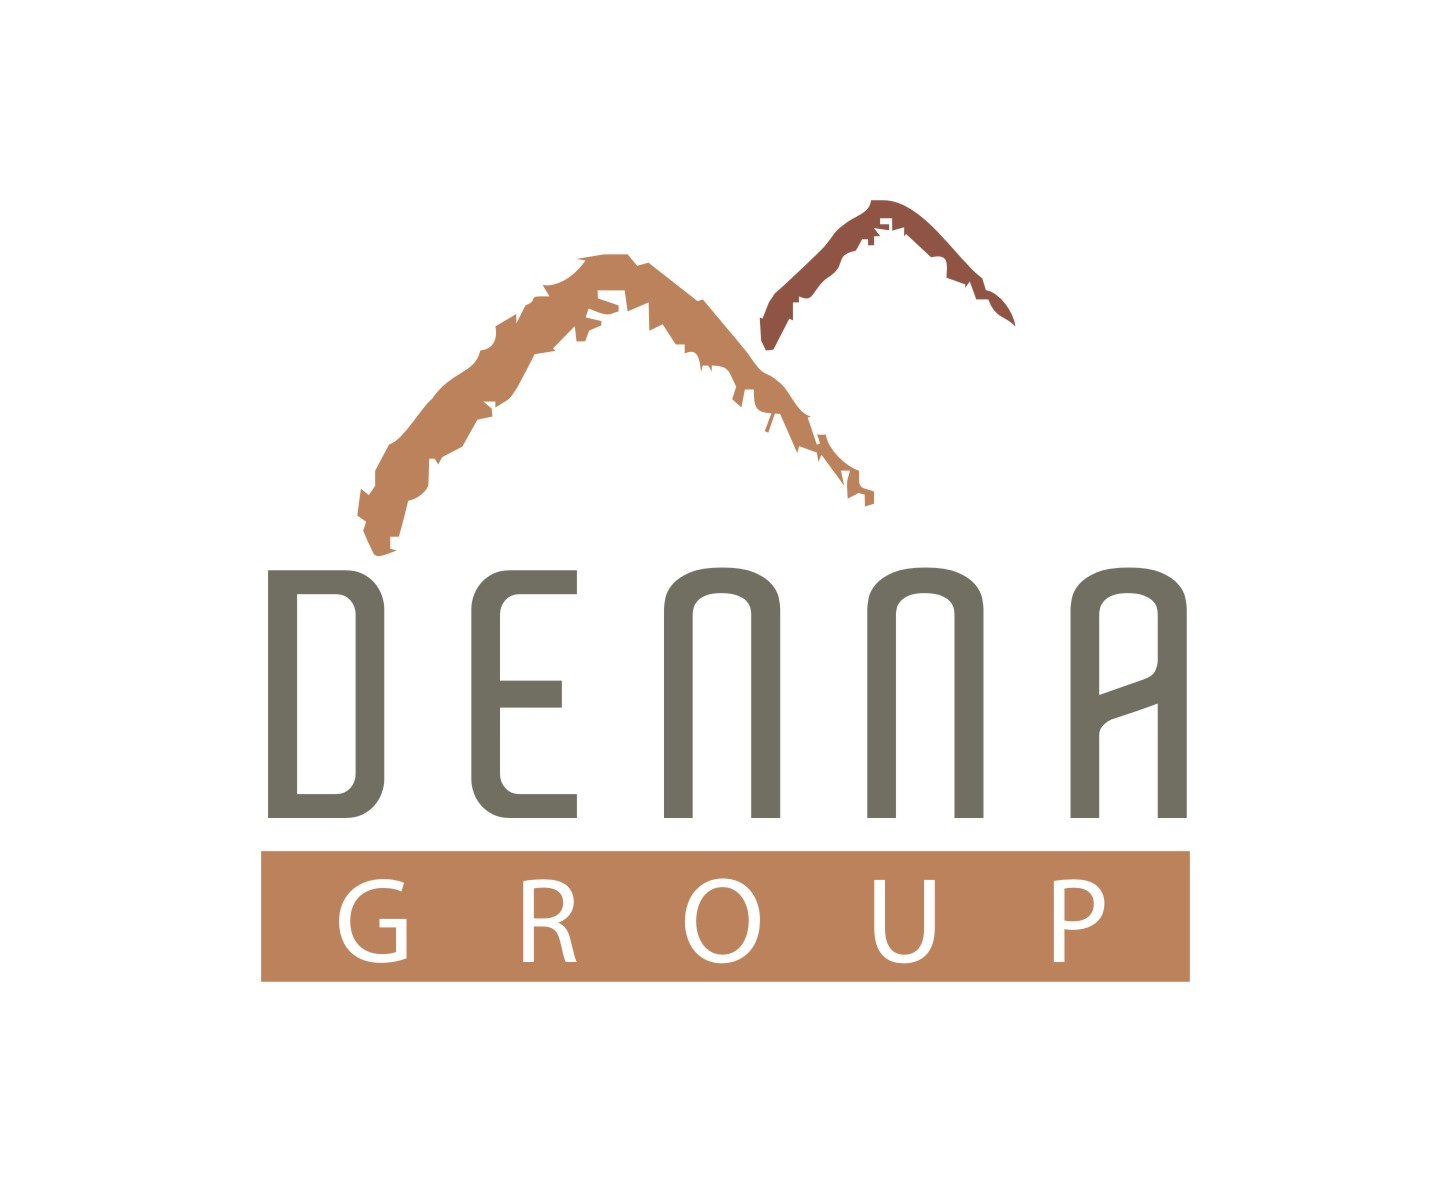 Logo Design by Mahida Kirit Chandrasinh - Entry No. 122 in the Logo Design Contest Denna Group Logo Design.